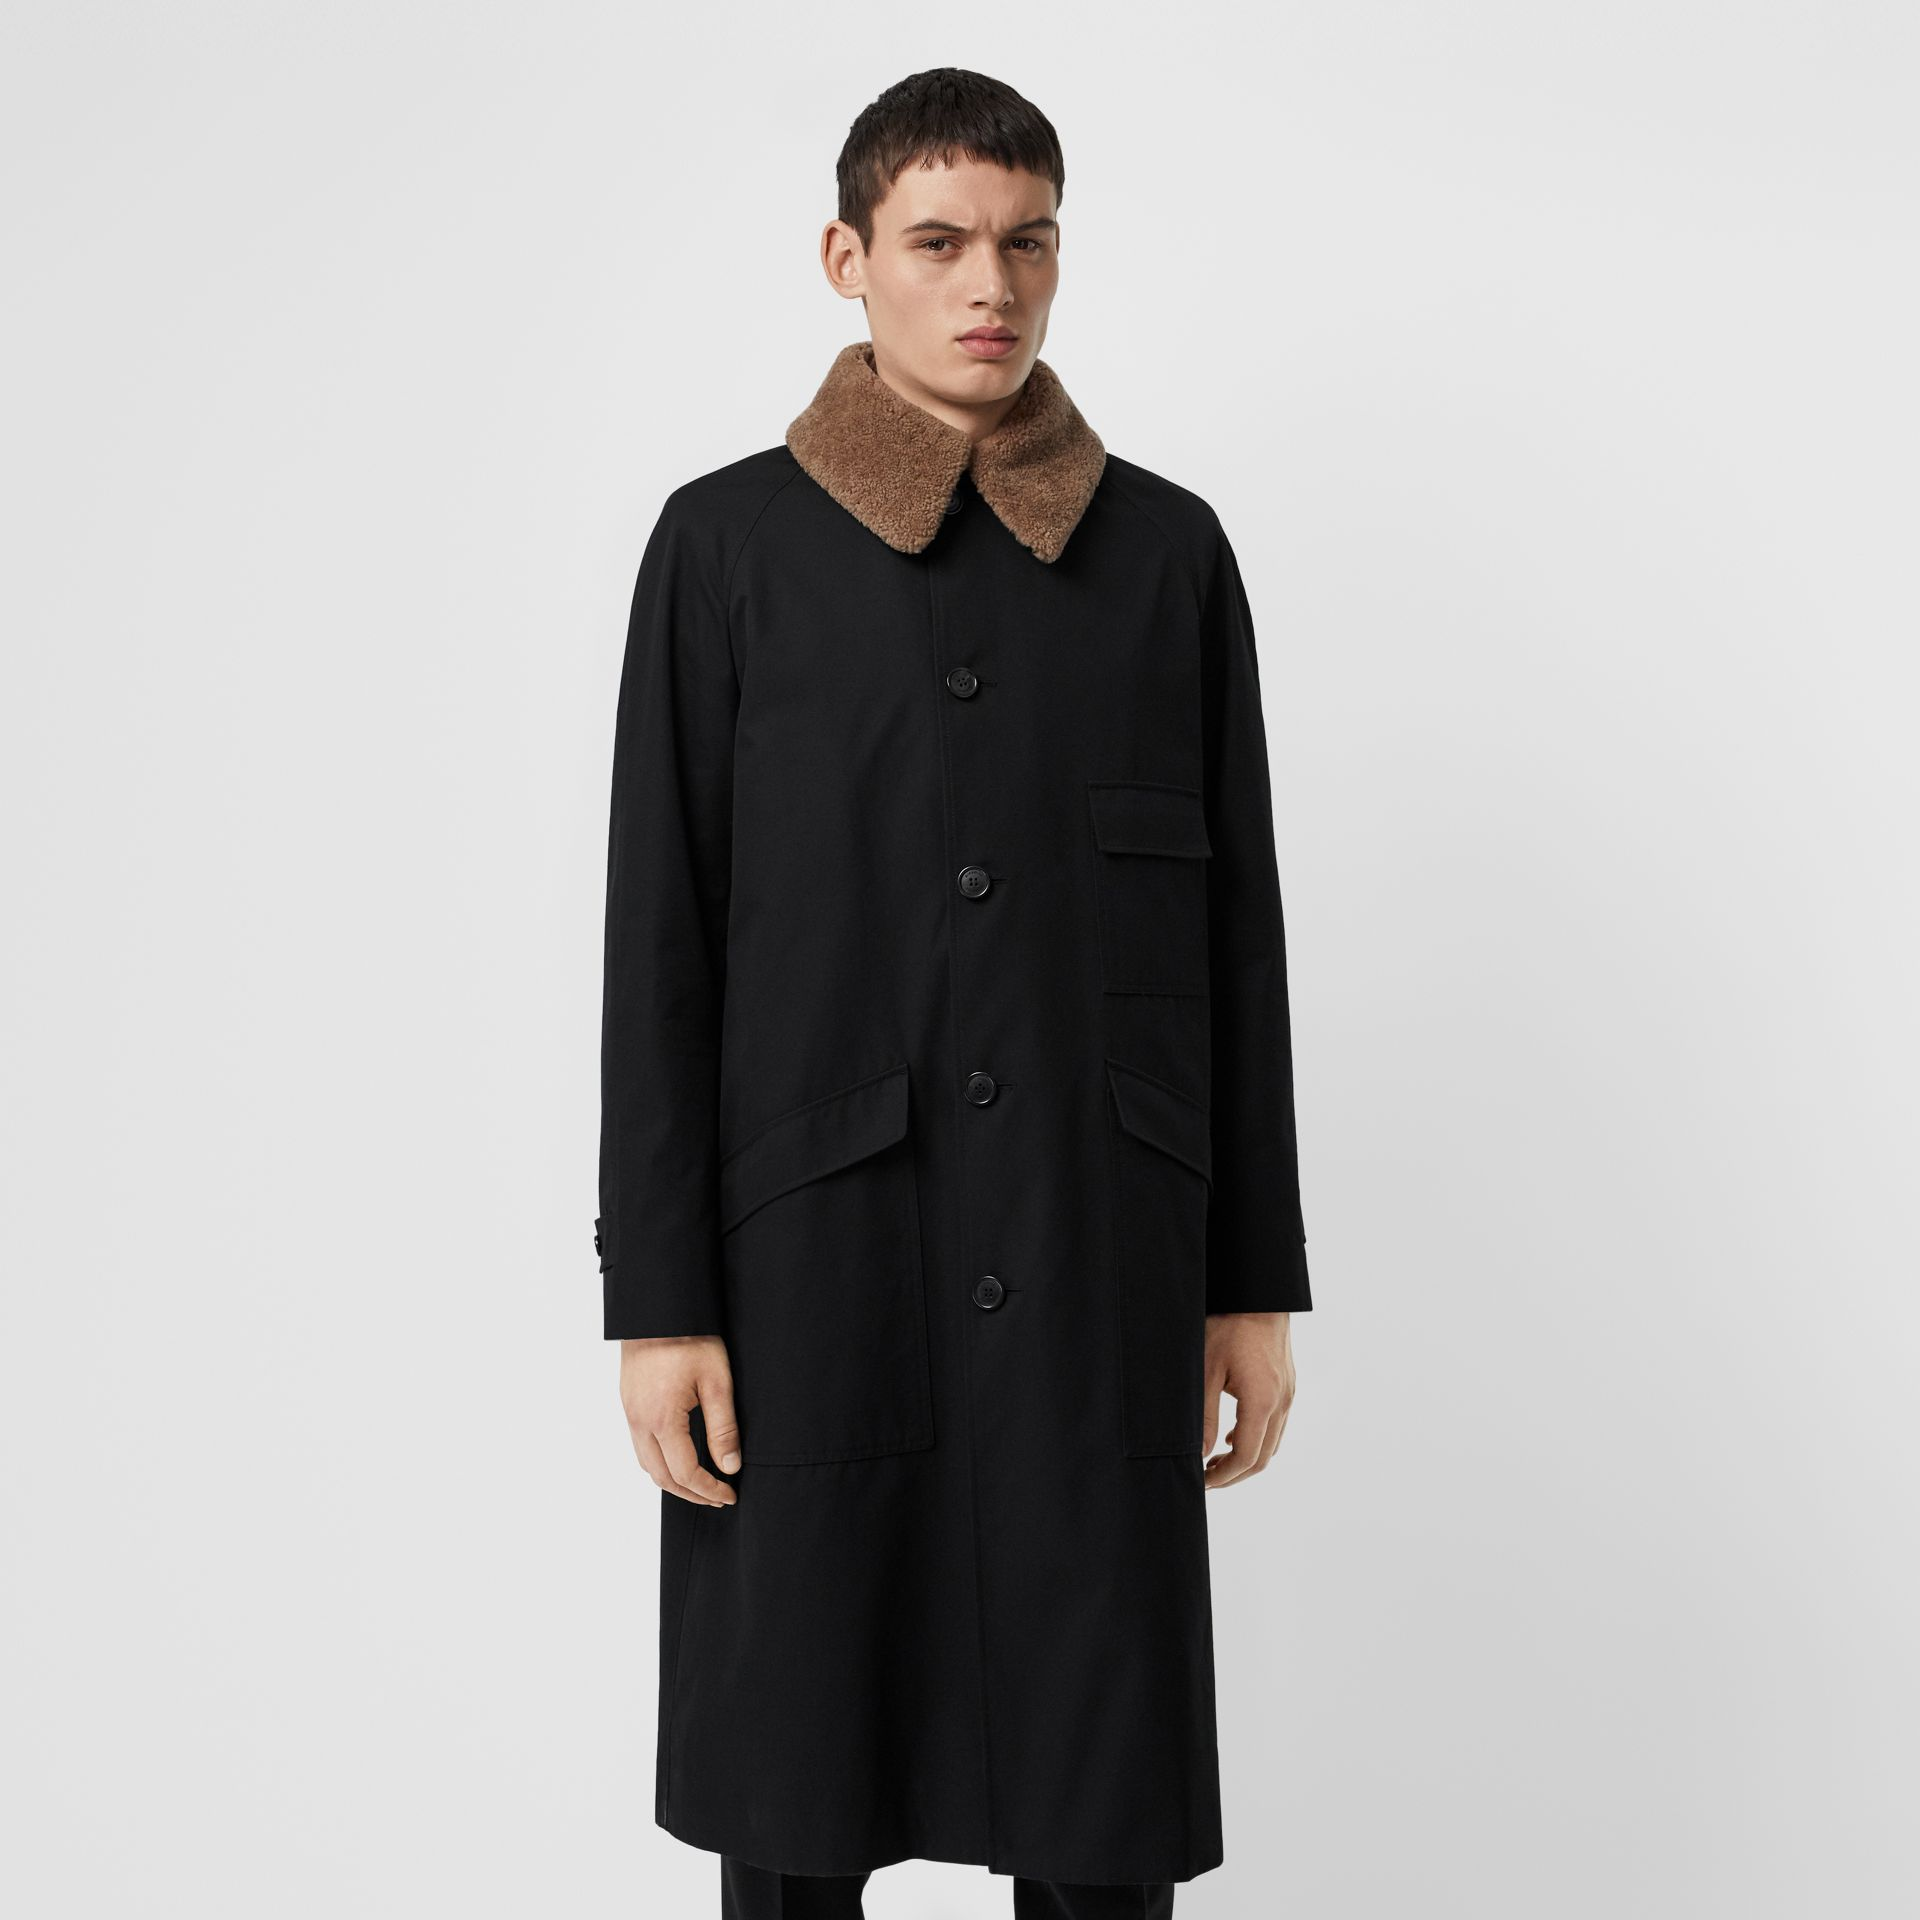 Contrast Shearling Collar Cotton Car Coat in Black - Men | Burberry Singapore - gallery image 6